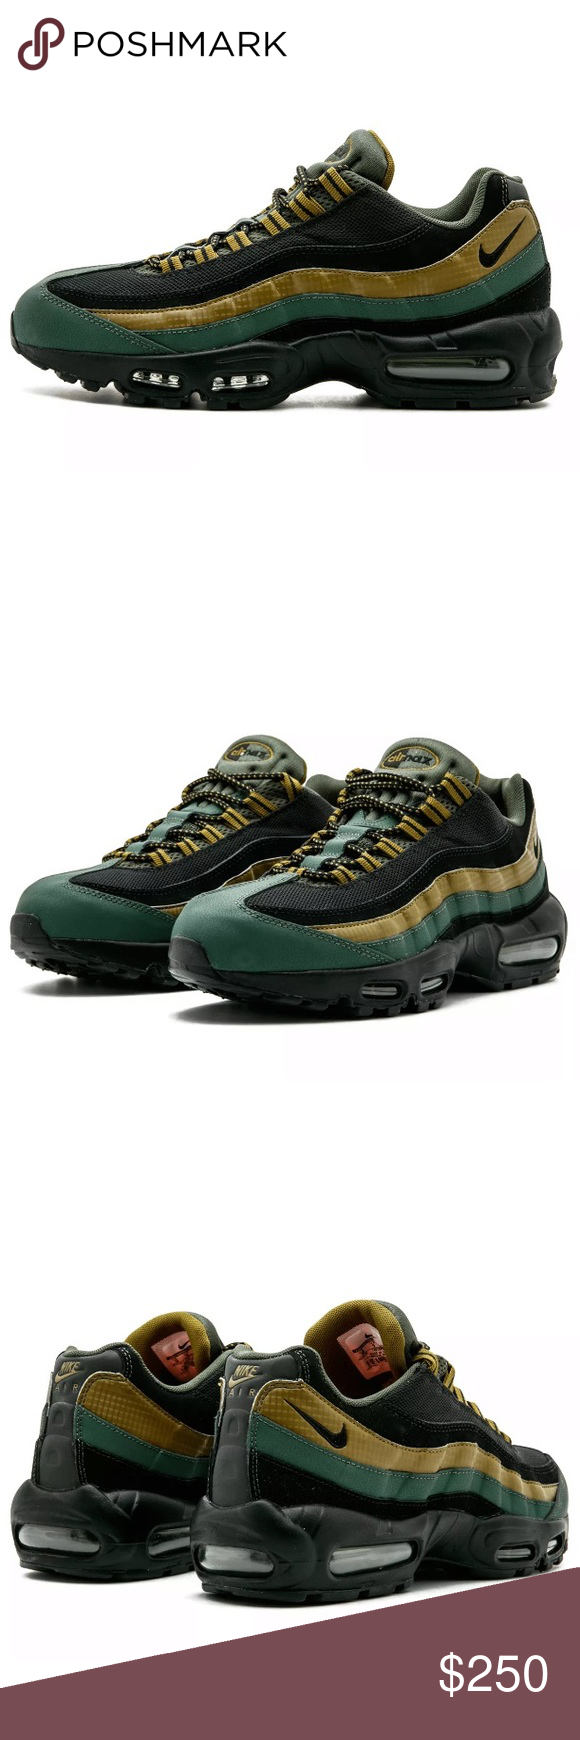 16c44fe9b3 Nike Air Max 95 Essential Size 11 Sneakers Brand New In Box! Dead Stock  Rare! Size: U.S. Men's 11 Color: Carbon Green/Black-Military Camo Green  •Leather and ...